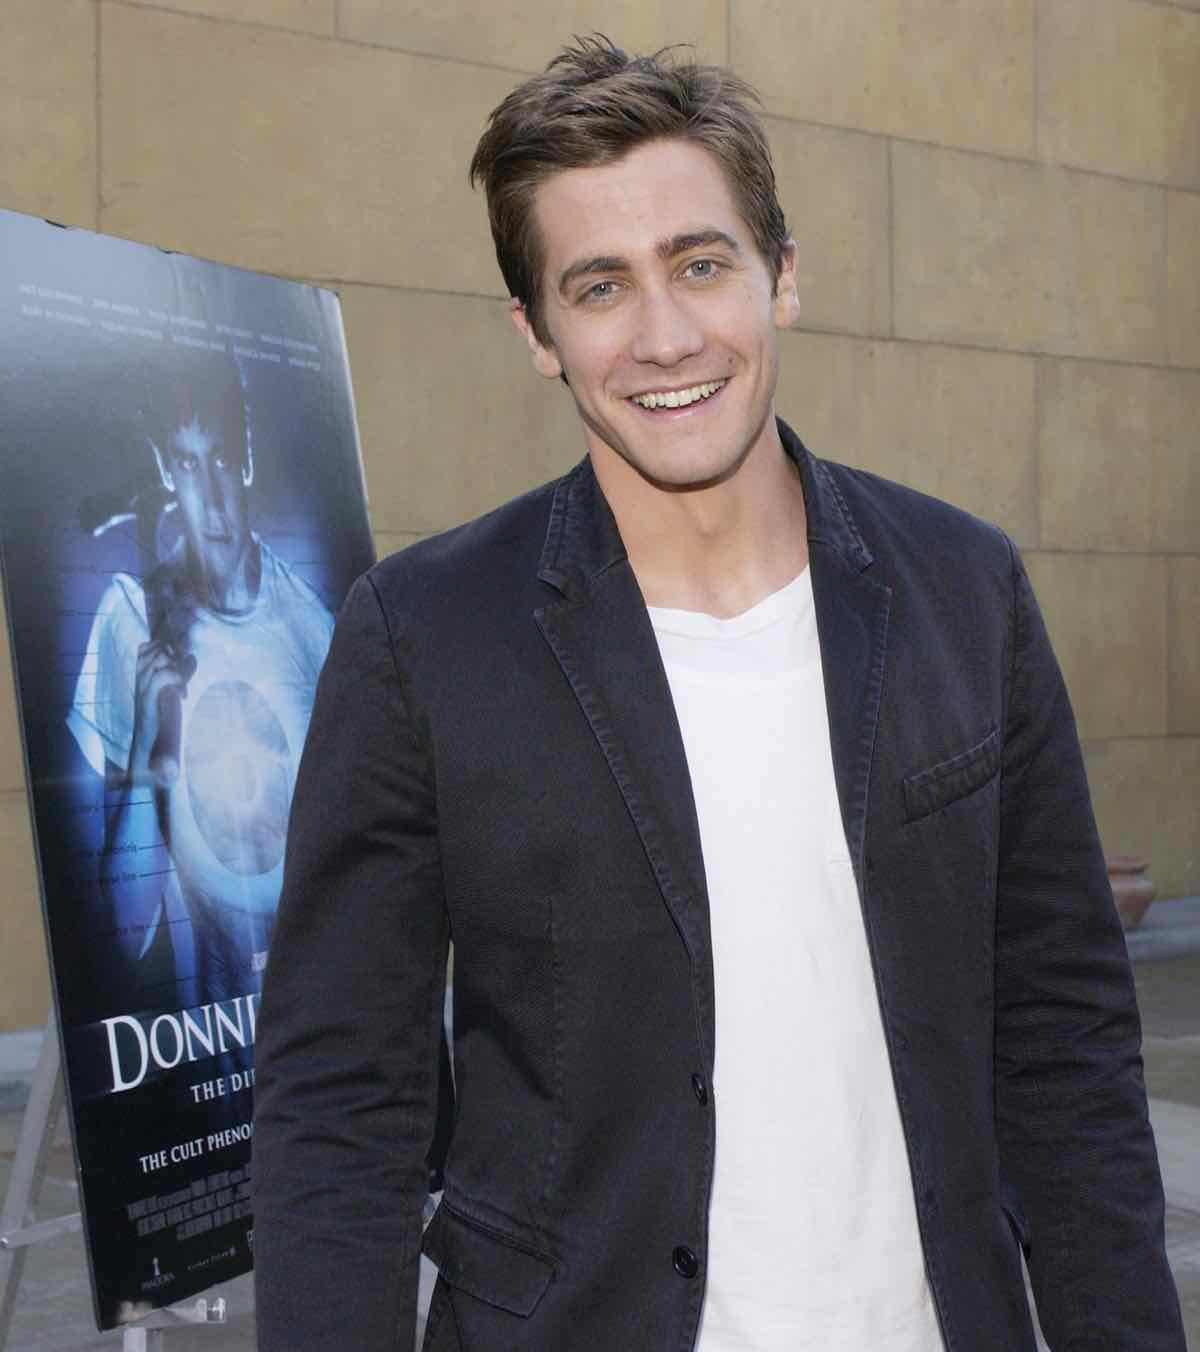 Jake Gyllenhaal CA: LA Premiere Of Newmarket Films Release Donnie Darko - The Directors Cut (Arrivals)